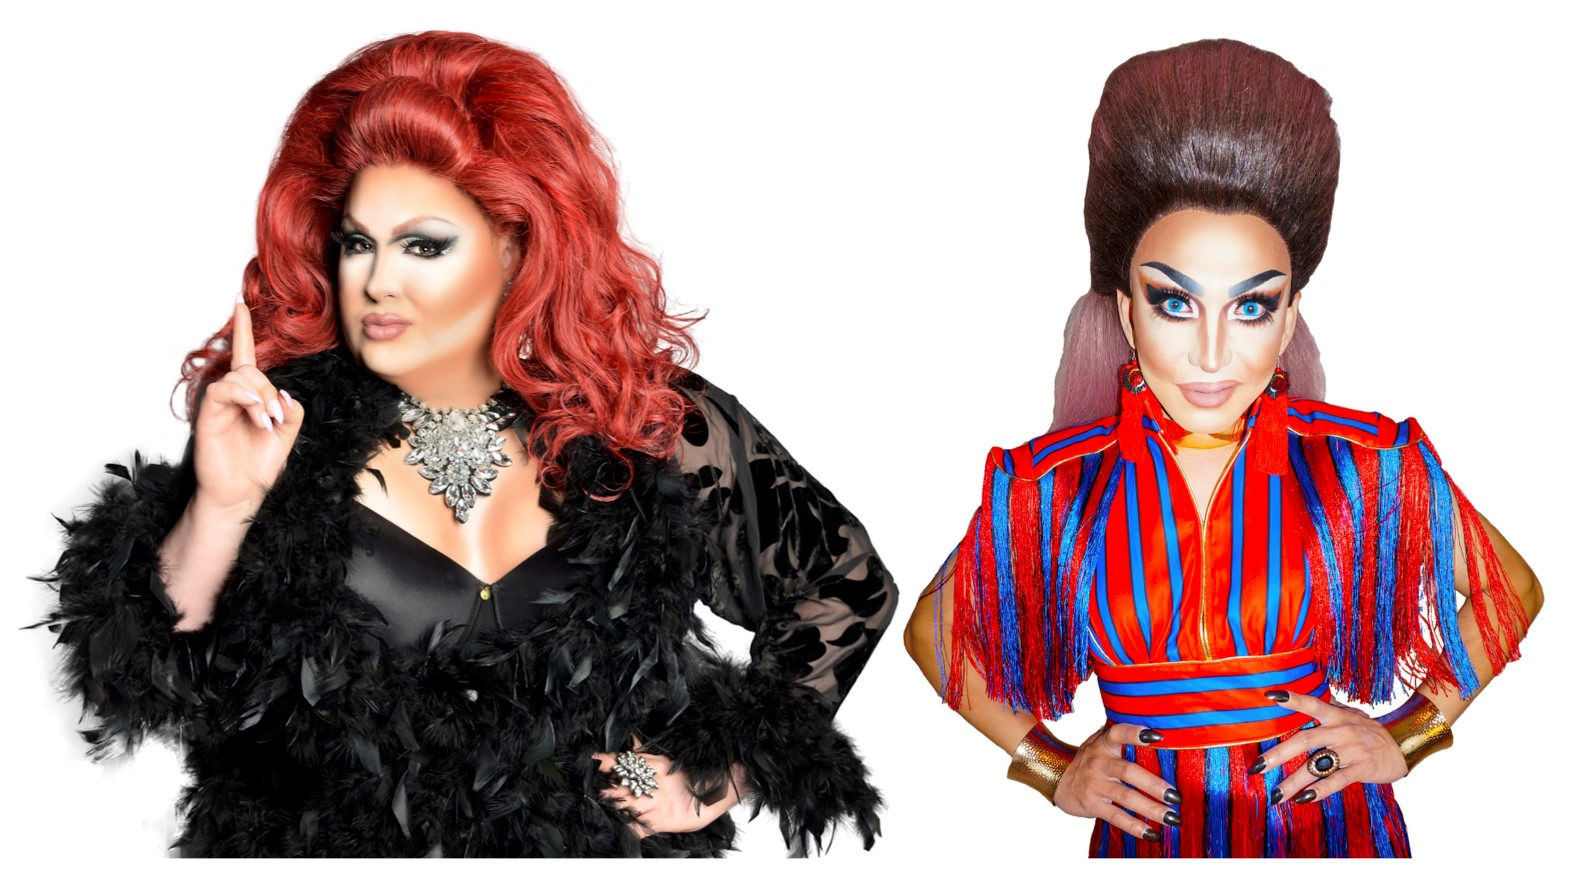 Drag queens Bombalicious Eklaver and Ba'Naka will serve as the hostesses for Taylor Gourmet's free Drag Bingo Pride bash on Thursday. (Image: Courtesy Bombalicious and Ba'Naka)